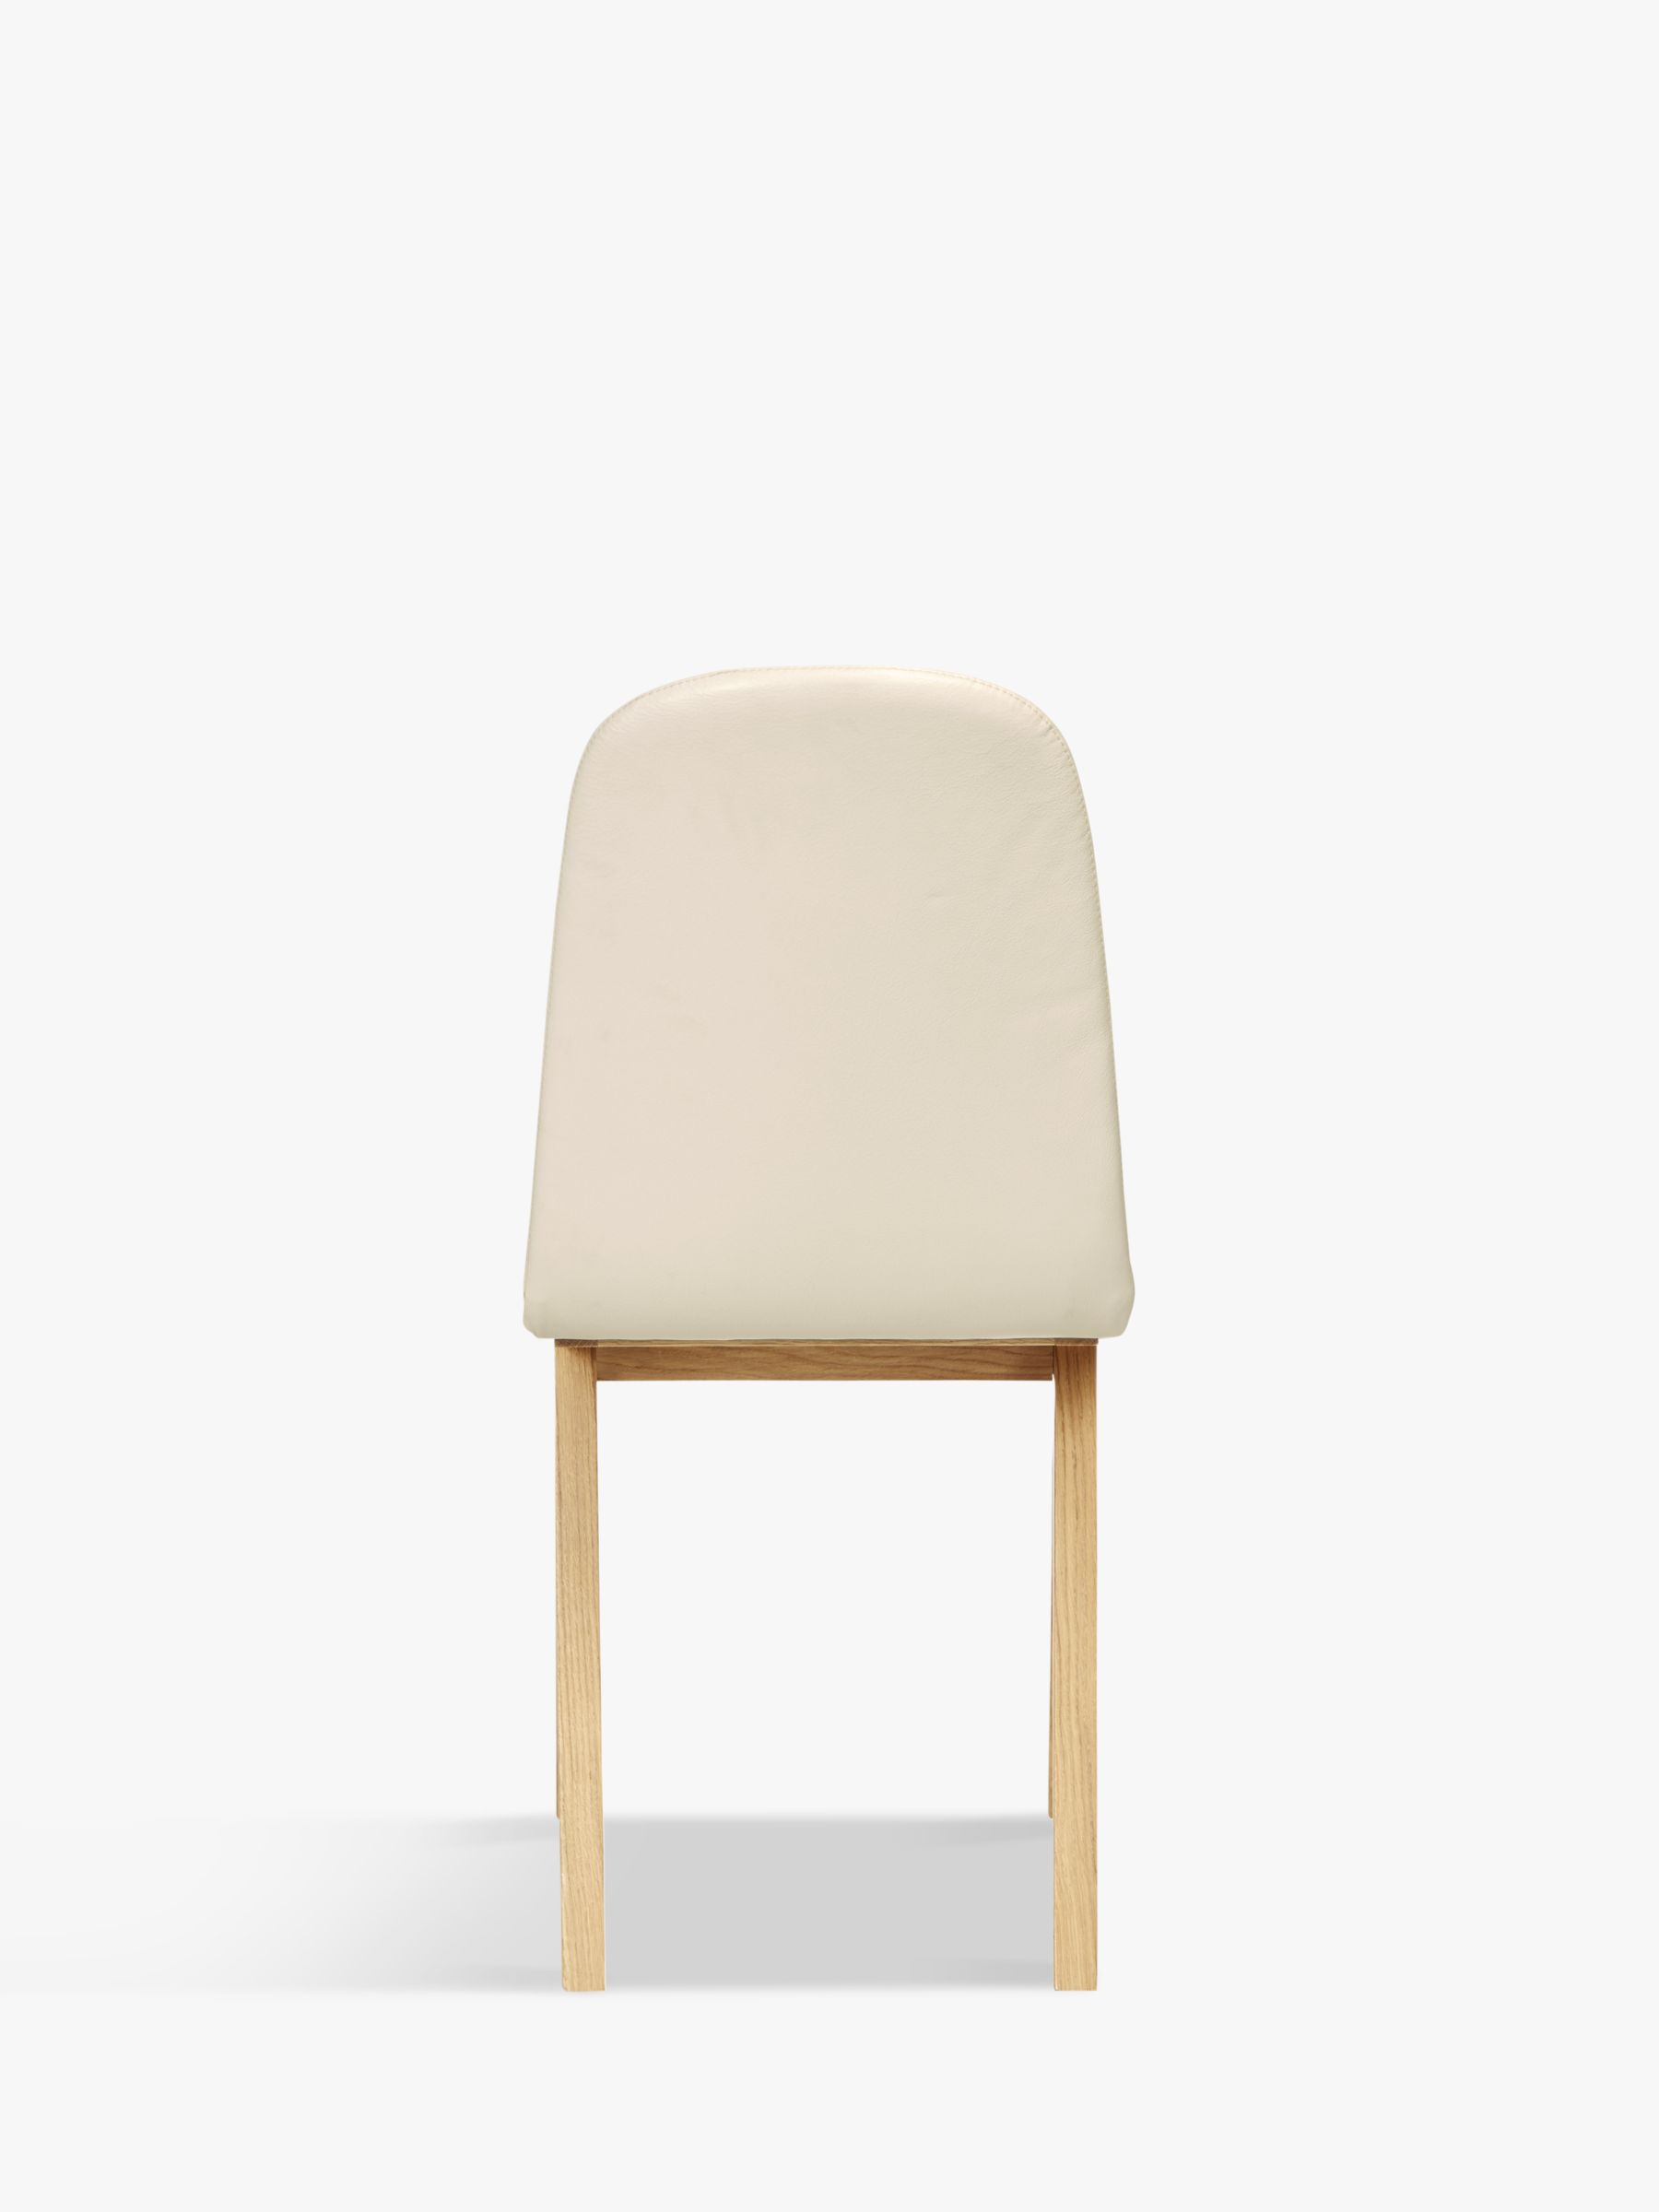 Bethan Gray for John Lewis Newman Leather Upholstered